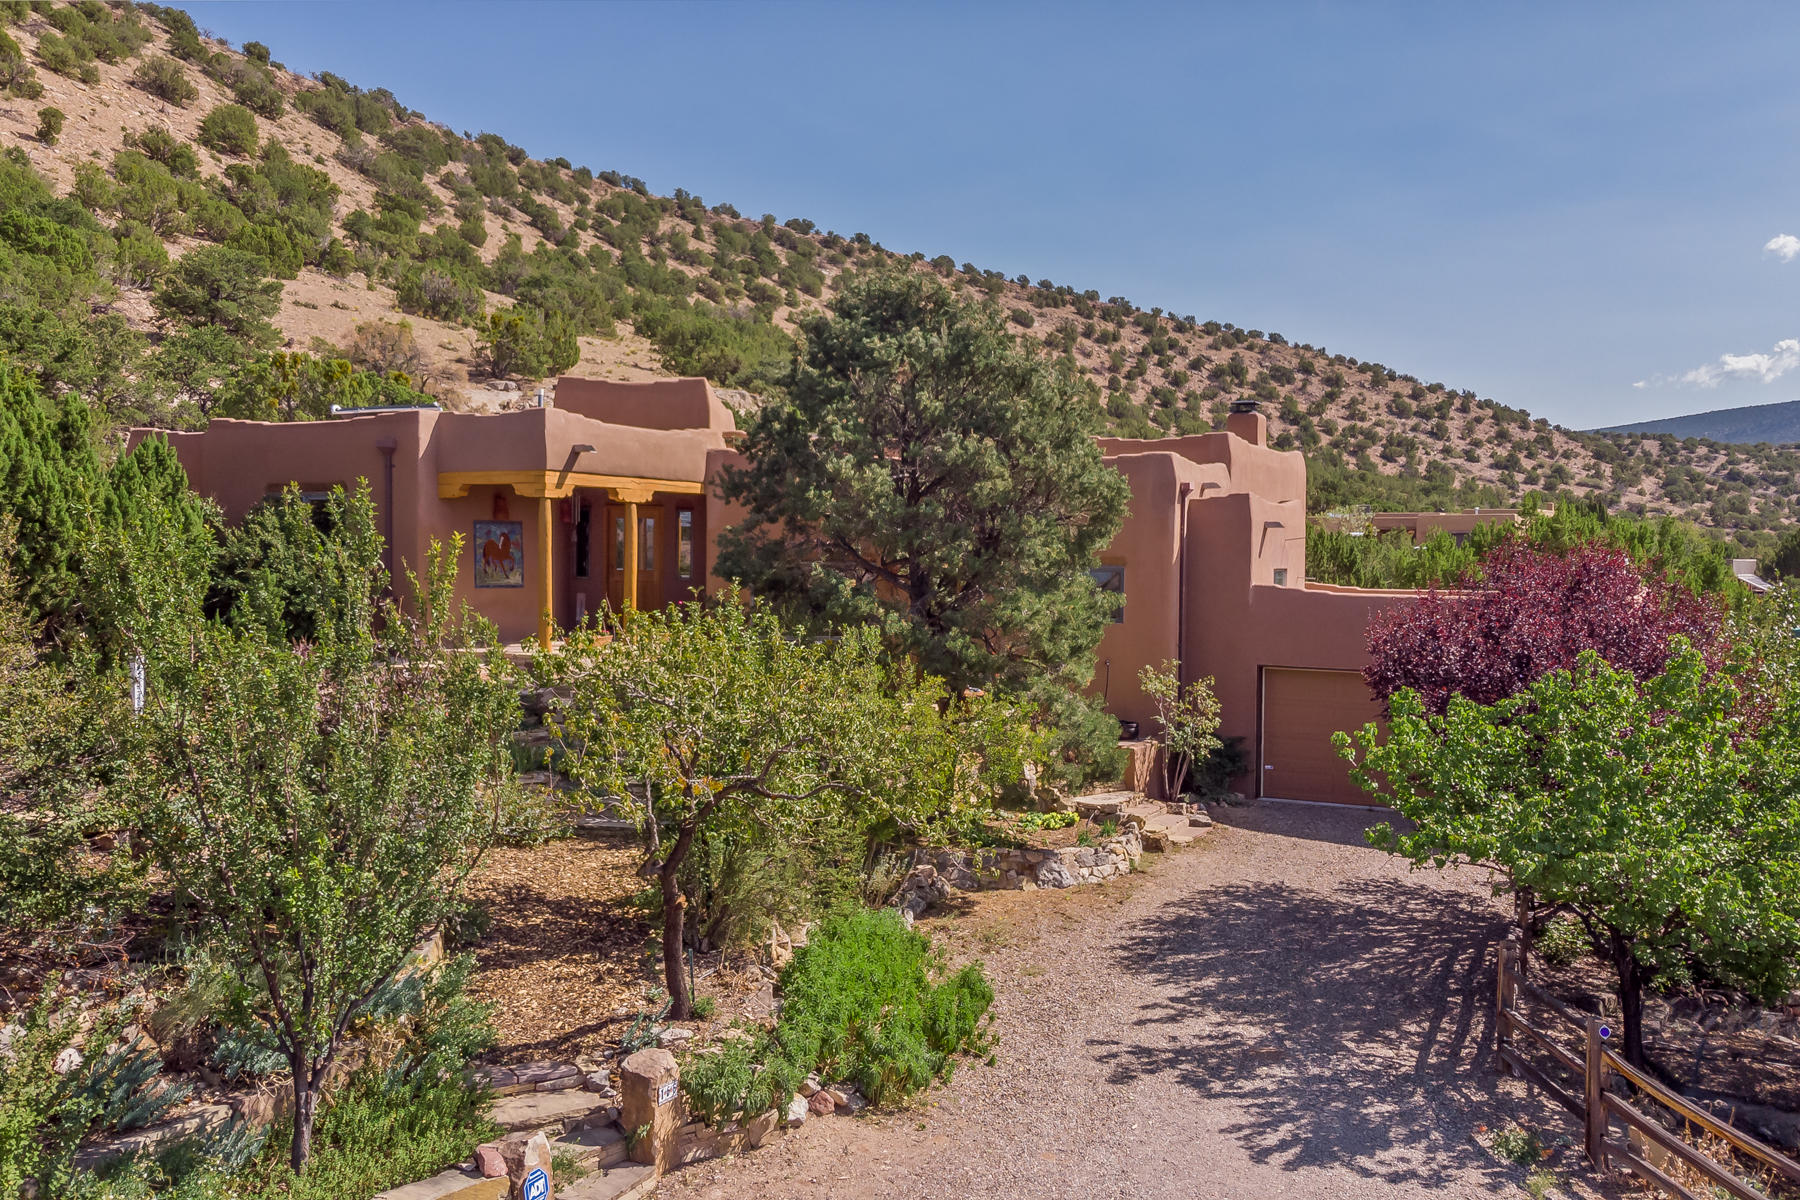 Enchanting Santa Fe style home nestled on 8.5 acres. Total SF includes: 2489sf MAIN w/4 bdrms, 2full & 1half bath, 2car gar; 808sf detached CASITA w/kitchen, full bath, loft bedroom, LR, laundry; 650sf STUDIO w/half bath & storage. Custom designed/ built as a peaceful oasis surrounded by special spaces for quiet meditation and relaxation. Gardens, orchard, koi pond, trees, native New Mexico wildflowers, amazing massive rock walls and patios create the retreat you have been looking for. Oversized wood windows bring beauty of the landscape & views to the rooms. Kitchen with artisan glass mosaic back splash surround/ granite countertop, brick, and tile floors, natural plaster adobe accent walls and half walls, nichos columns, corbels, handmade adobe Kiva fireplace and bancos with wood storage